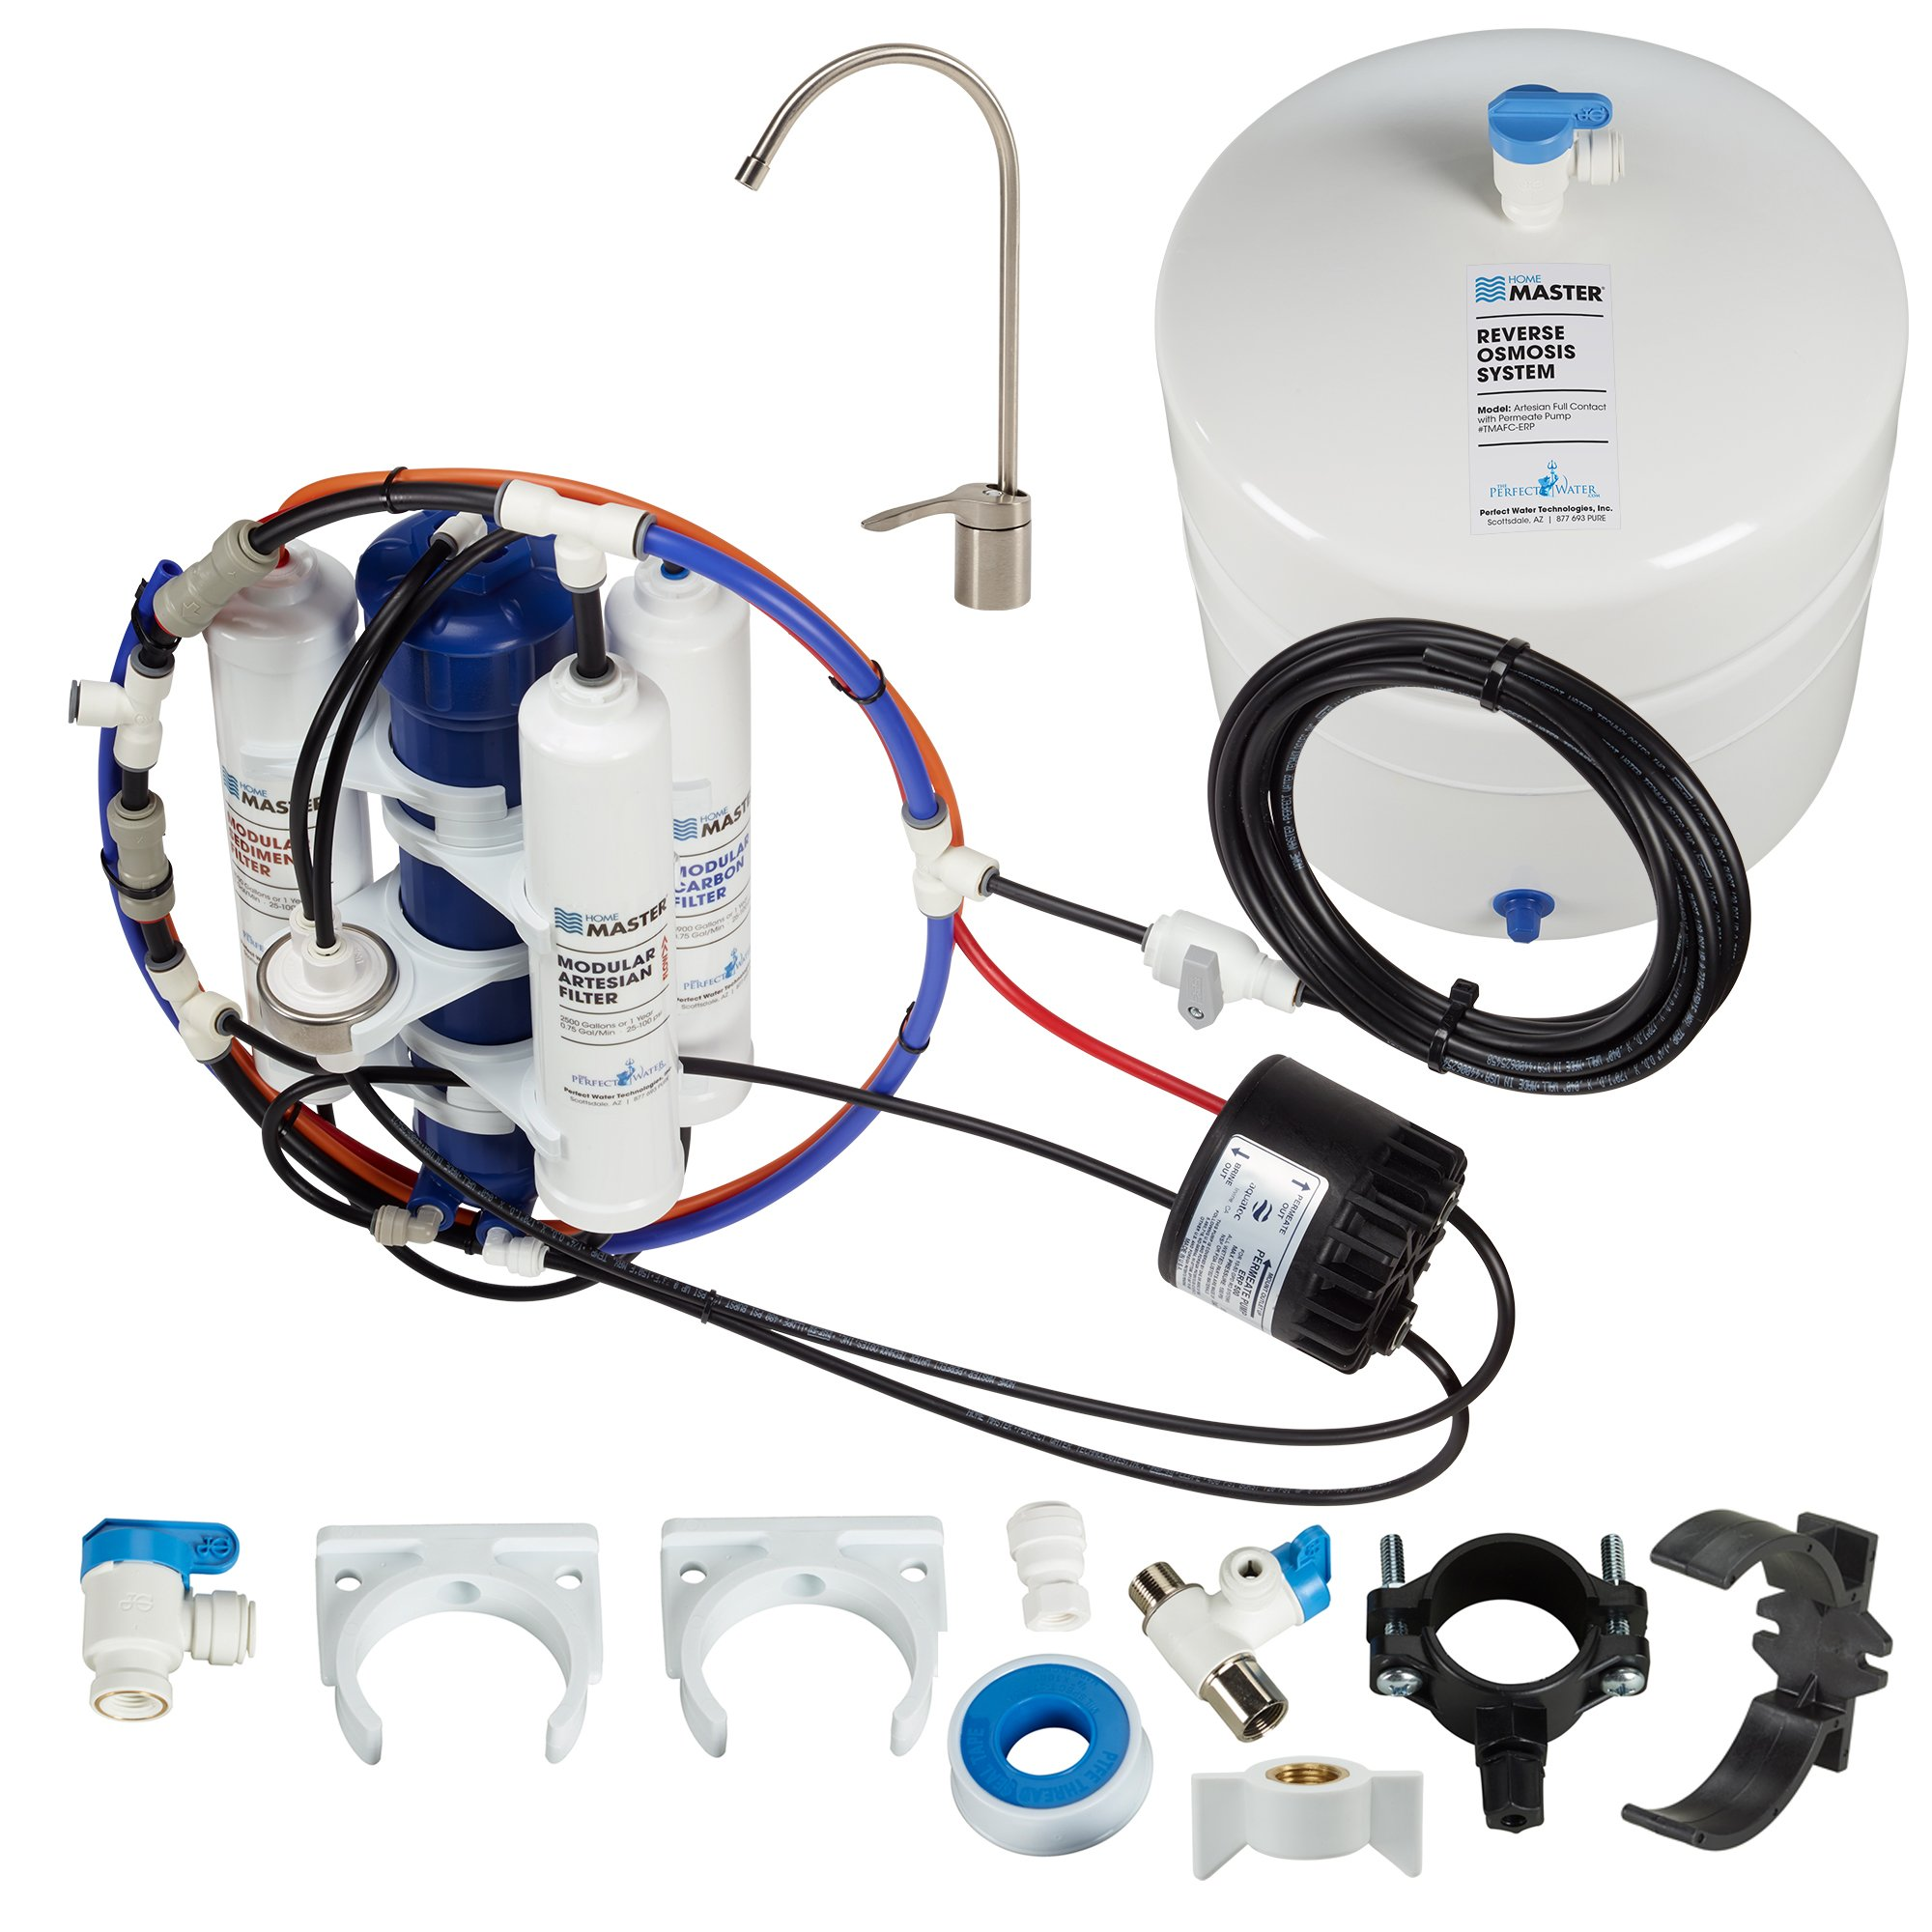 Home Master TMAFC-ERP-L Artesian Full Contact with Permeate Pump Loaded Undersink Reverse Osmosis Water Filter System by Home Master (Image #3)